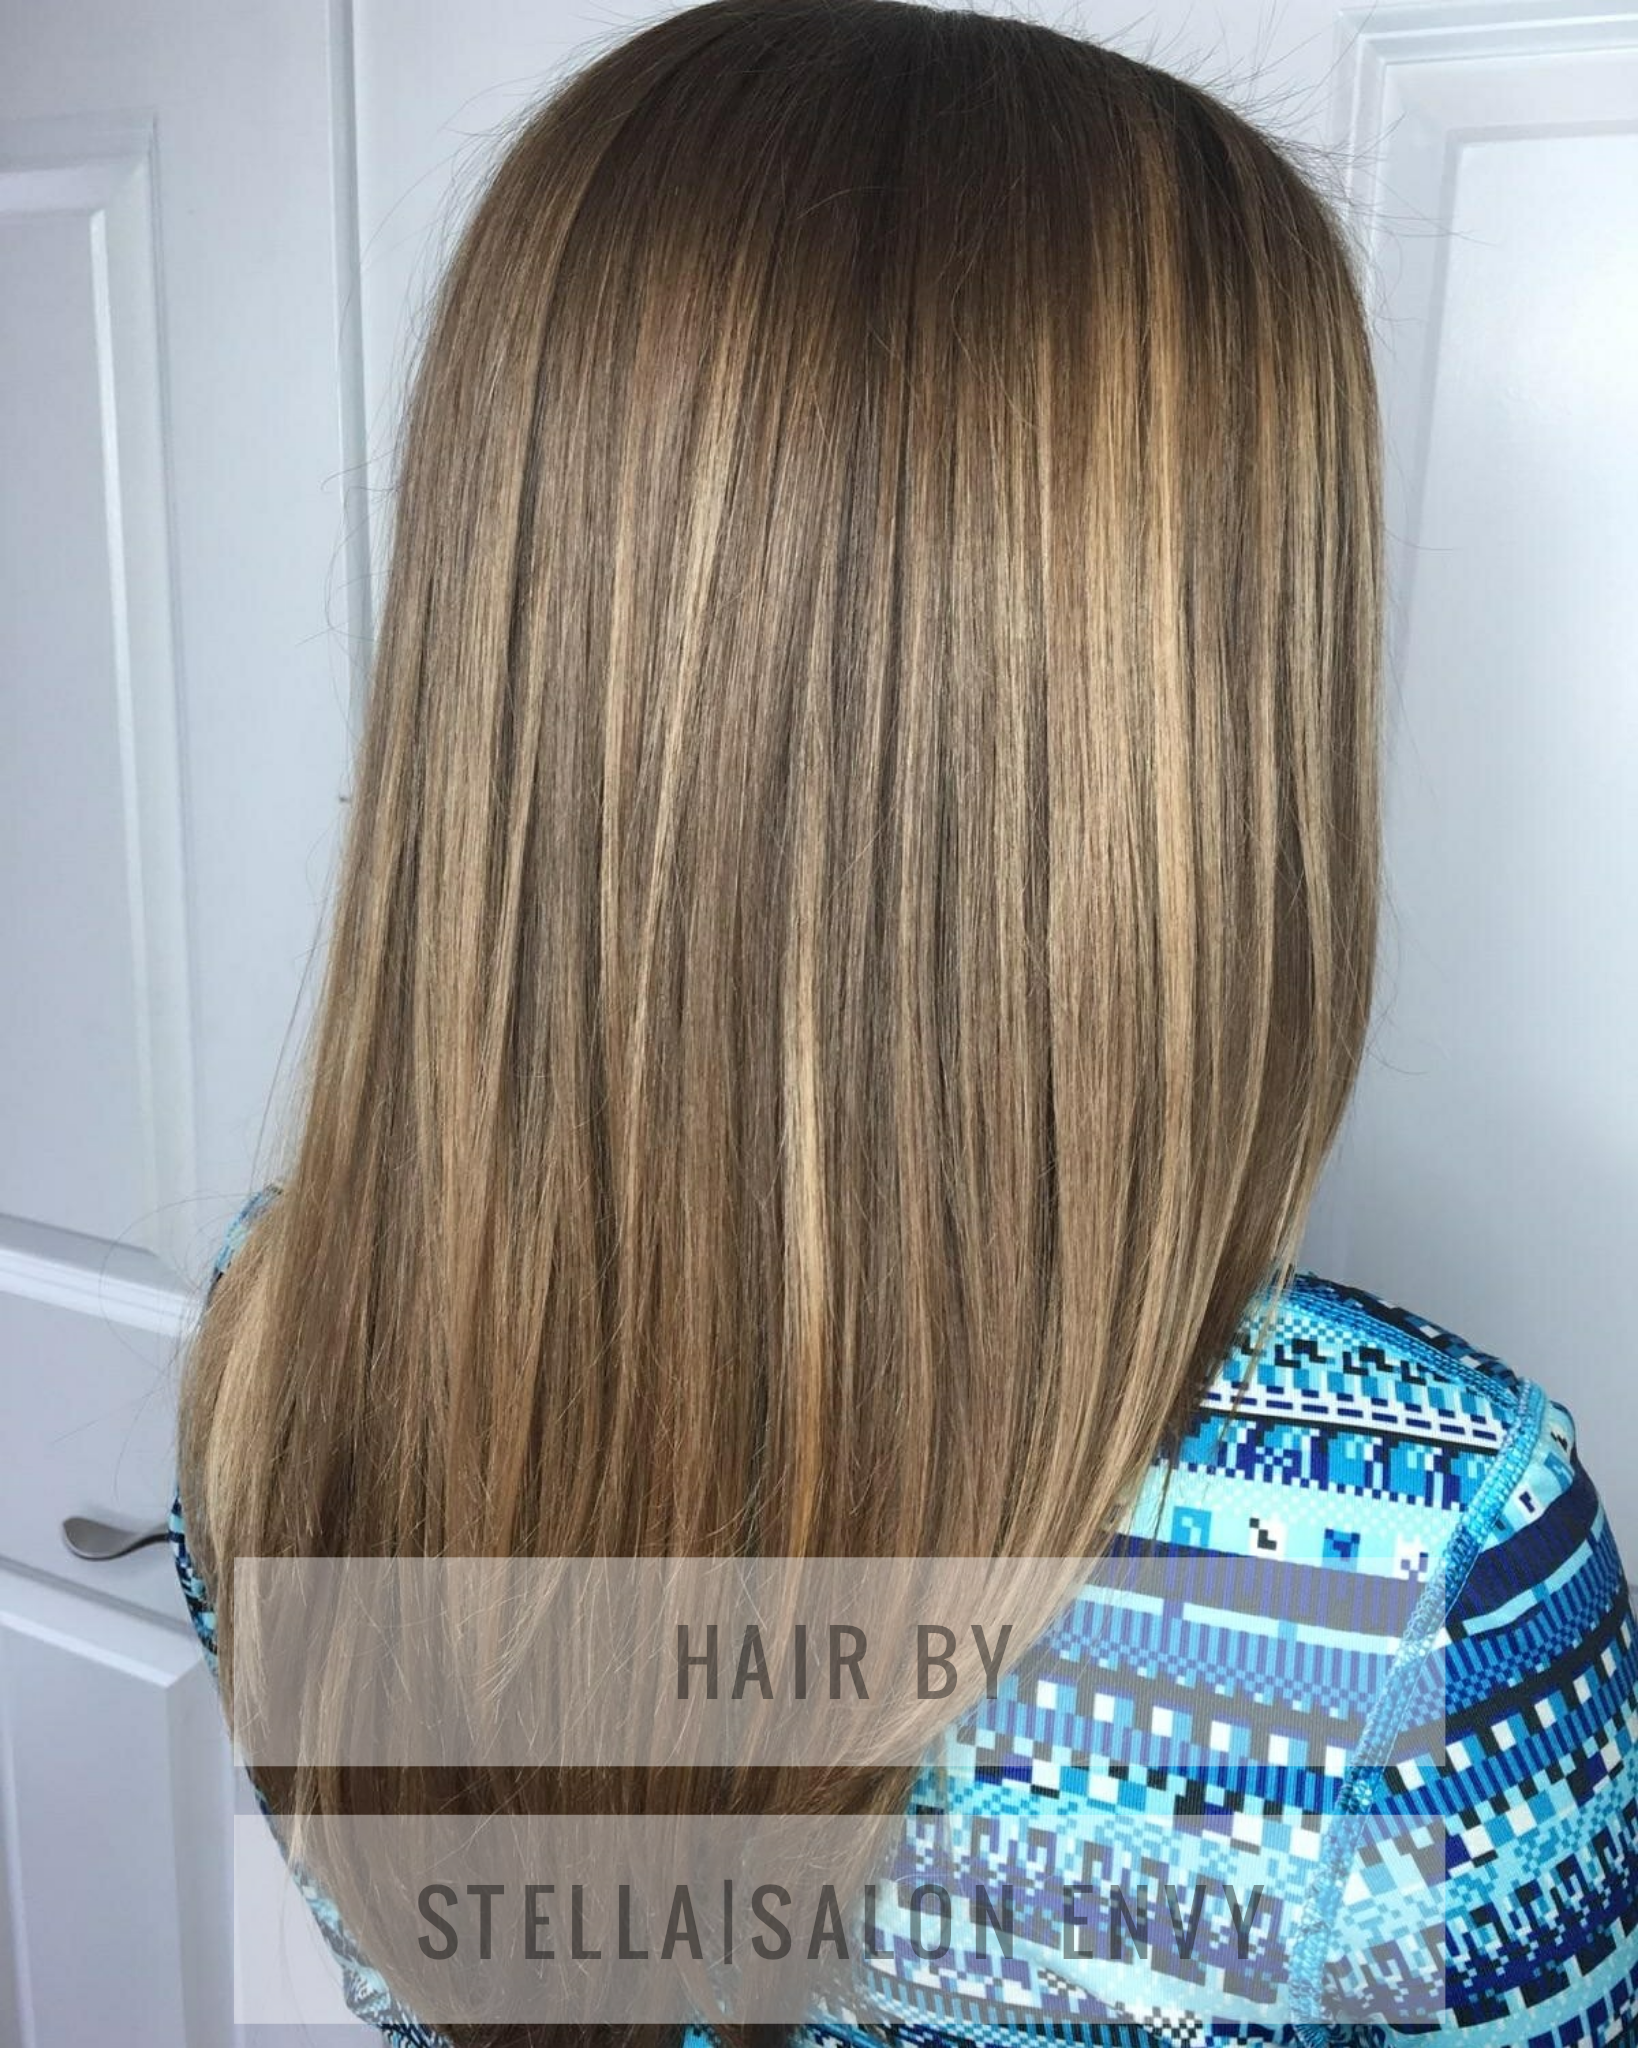 #SalonEnvyChicago #longhair #longhairstyles #longhaircuts #balayage #dimension #balayagehighlights #coolbrown #bronde #highlights #lowlights #chicago #topsalon #topsalonchicago #bestbalayage #bestbalayagechicago